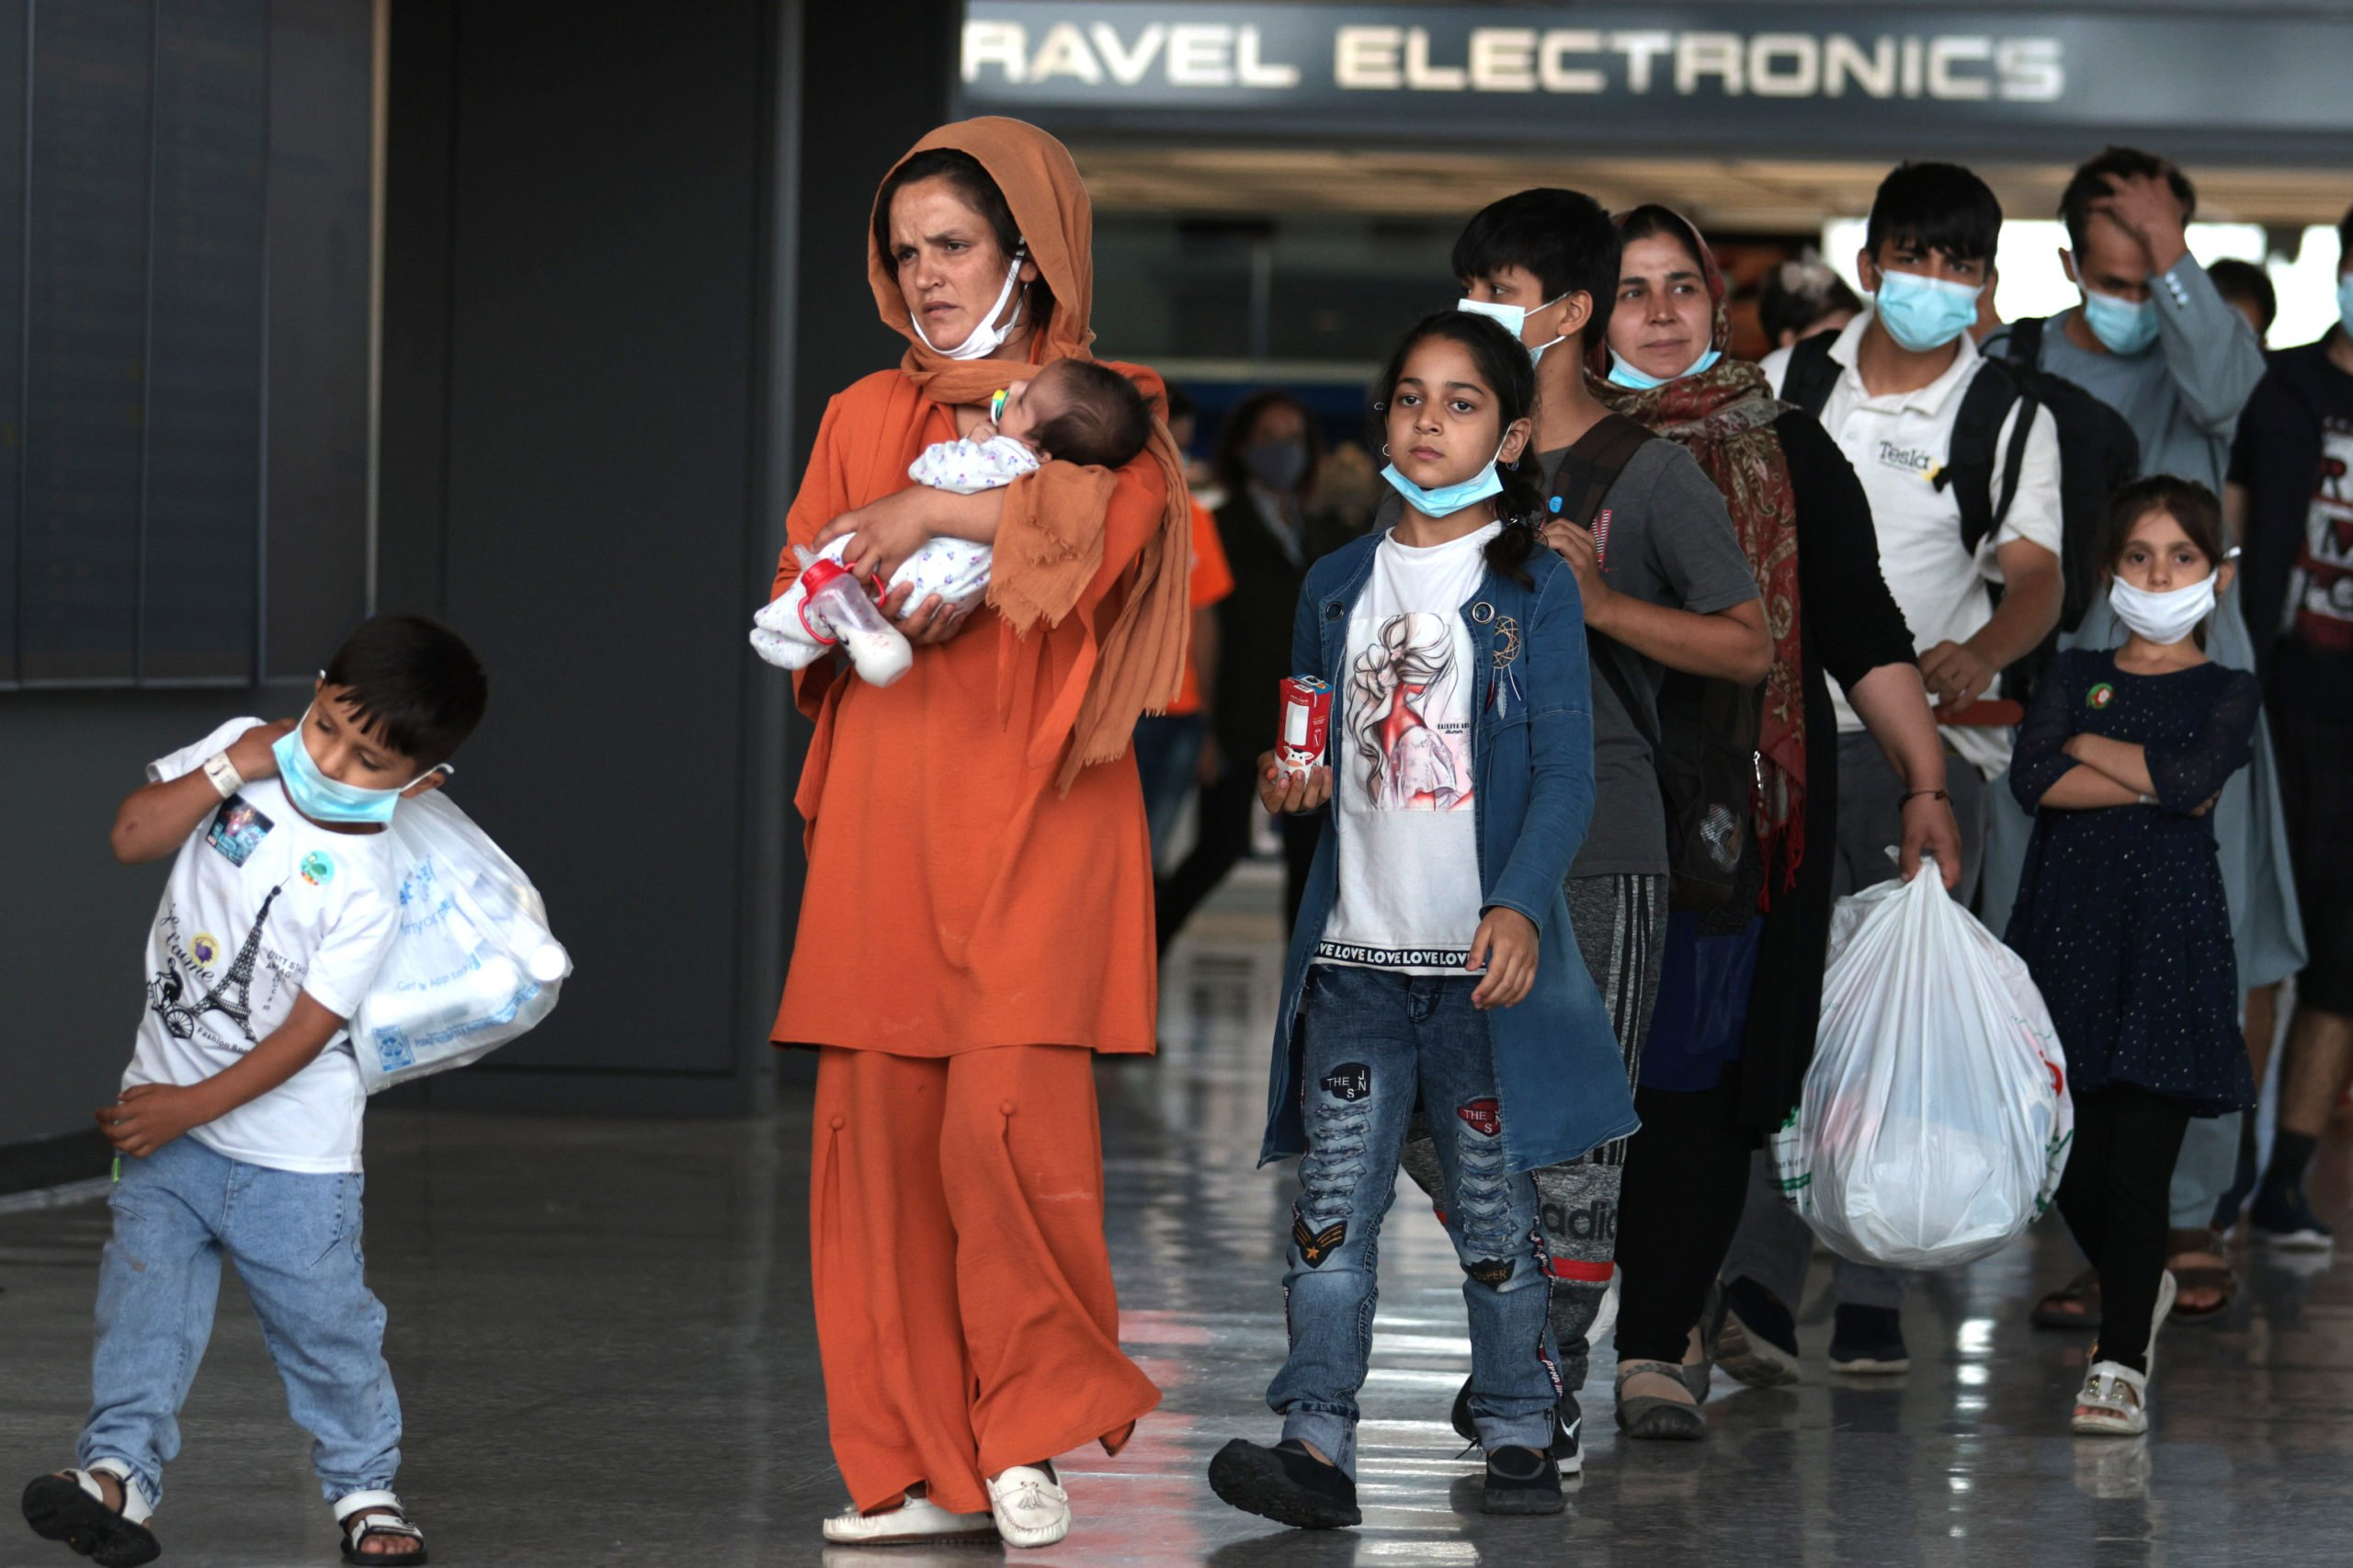 Refugees walk through the departure terminal to a bus at Dulles International Airport after being evacuated from Kabul following the Taliban takeover of Afghanistan on August 31, 2021 in Dulles, Virginia. (Photo by Anna Moneymaker/Getty Images)